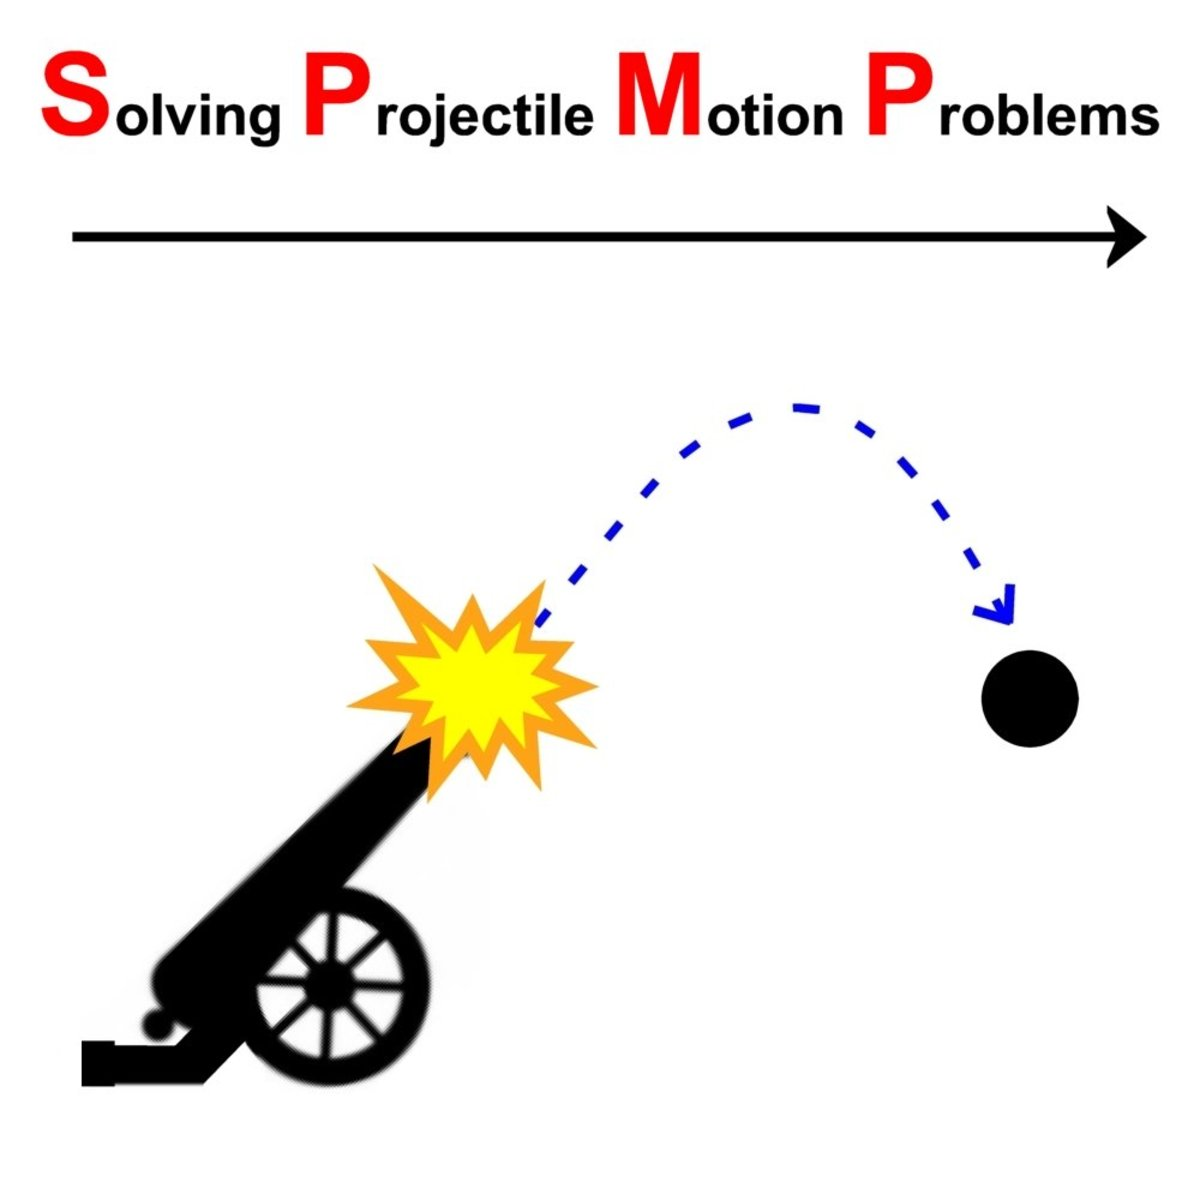 Solving Projectile Motion Equations: Applying Kinematics